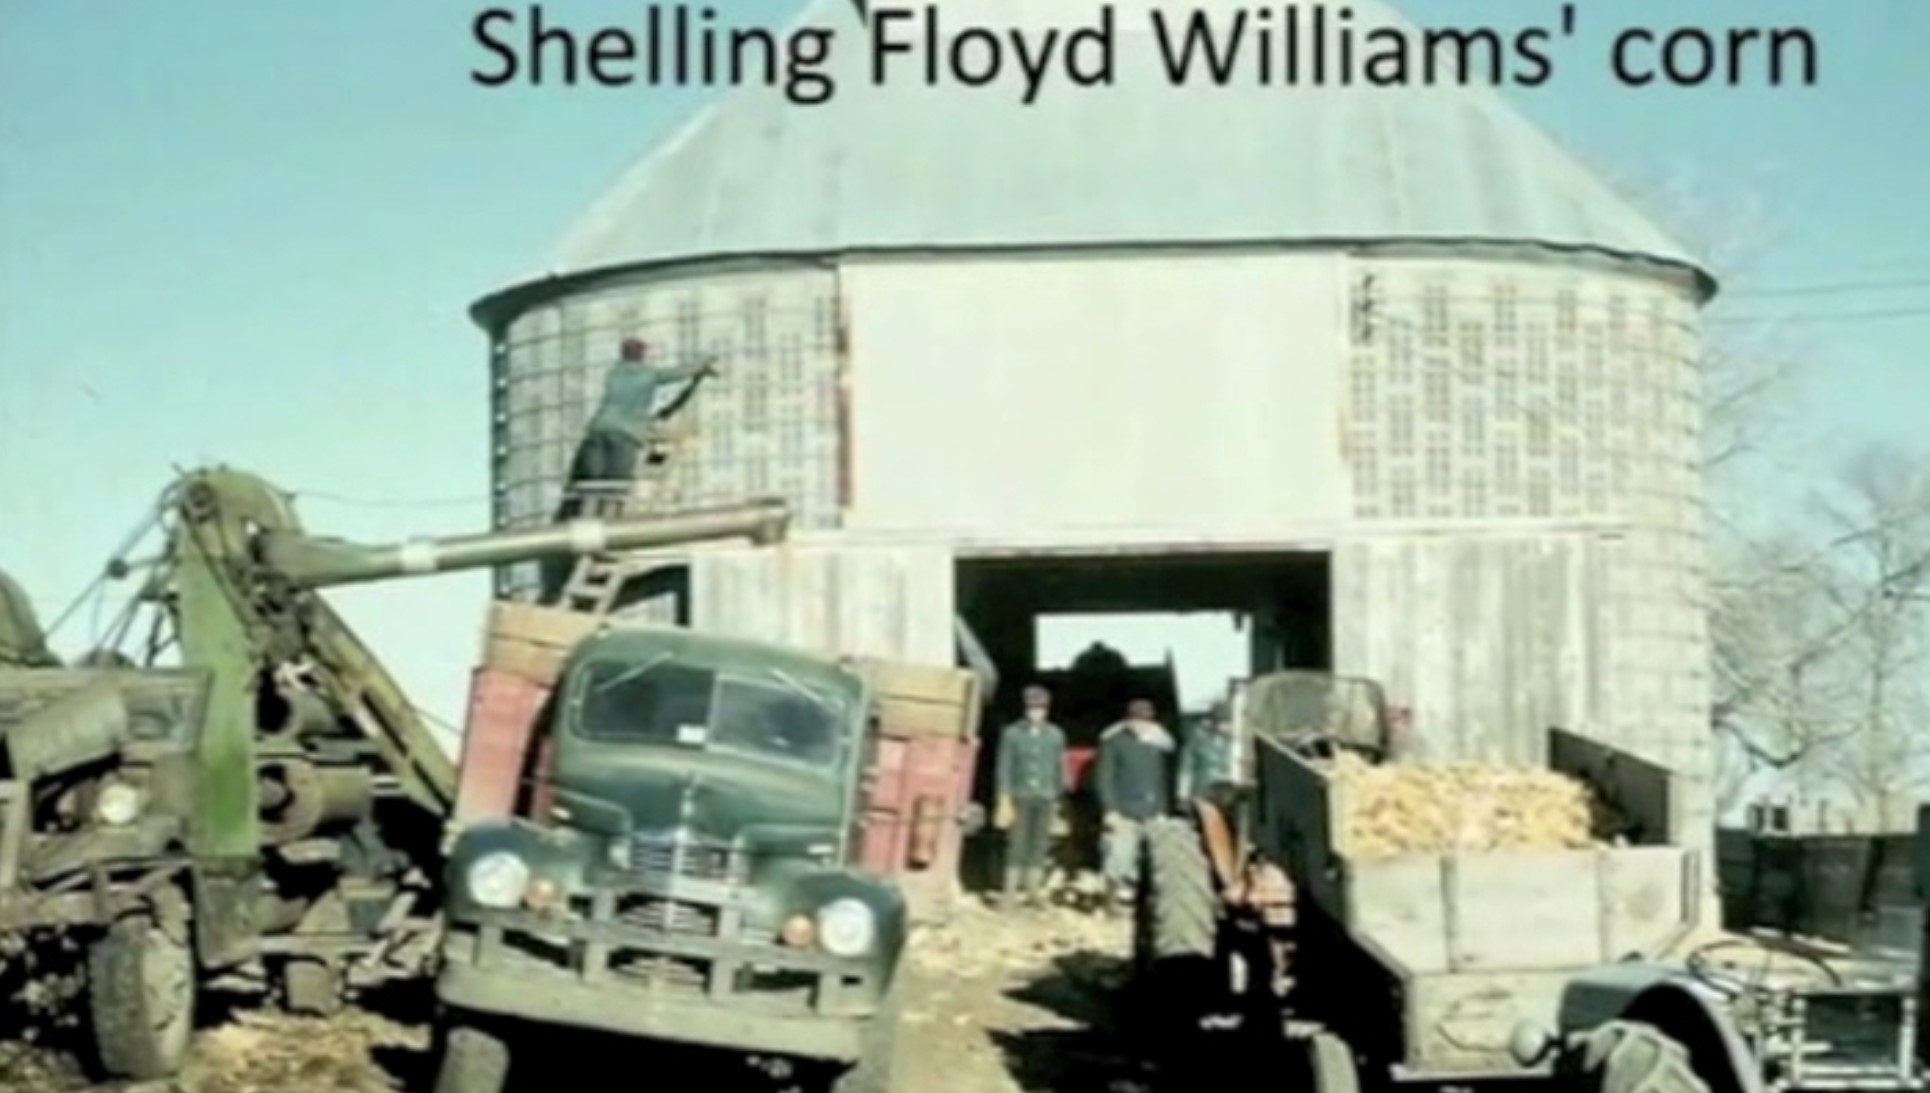 Floyd WIlliams shelling